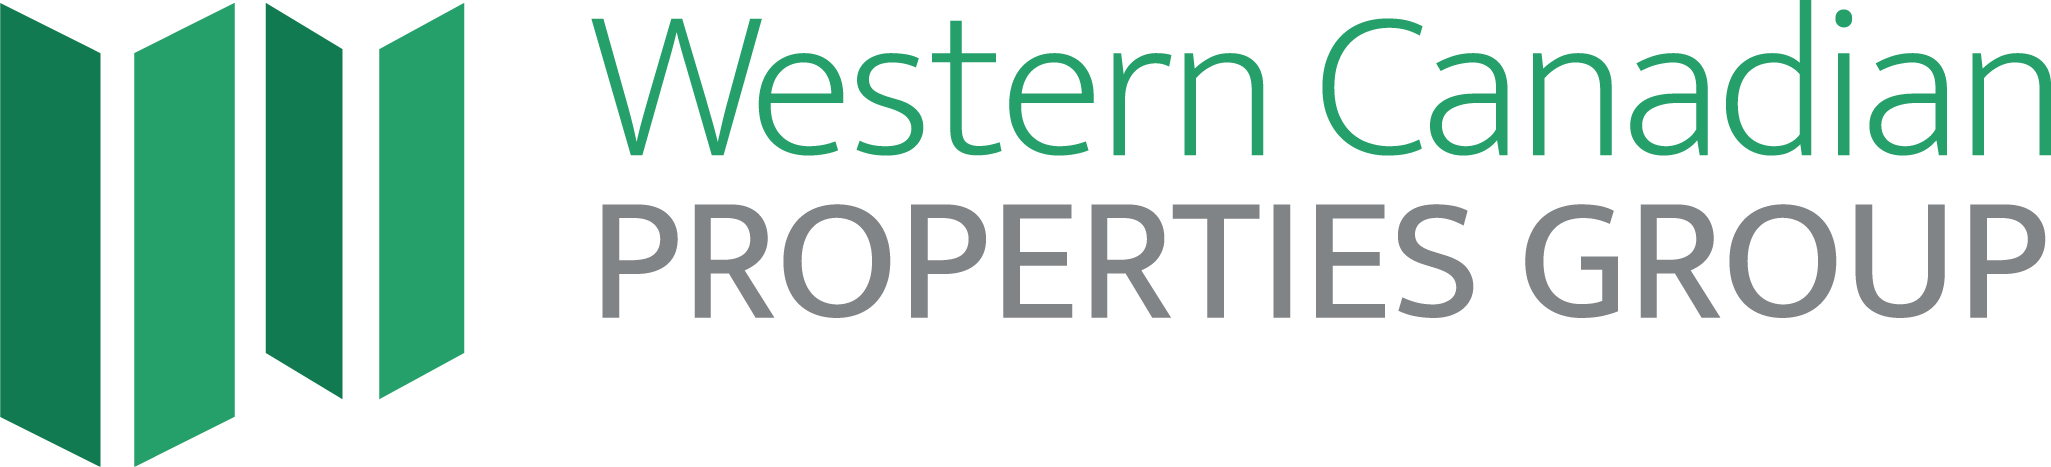 Western Canadian Properties Group (WCPG)